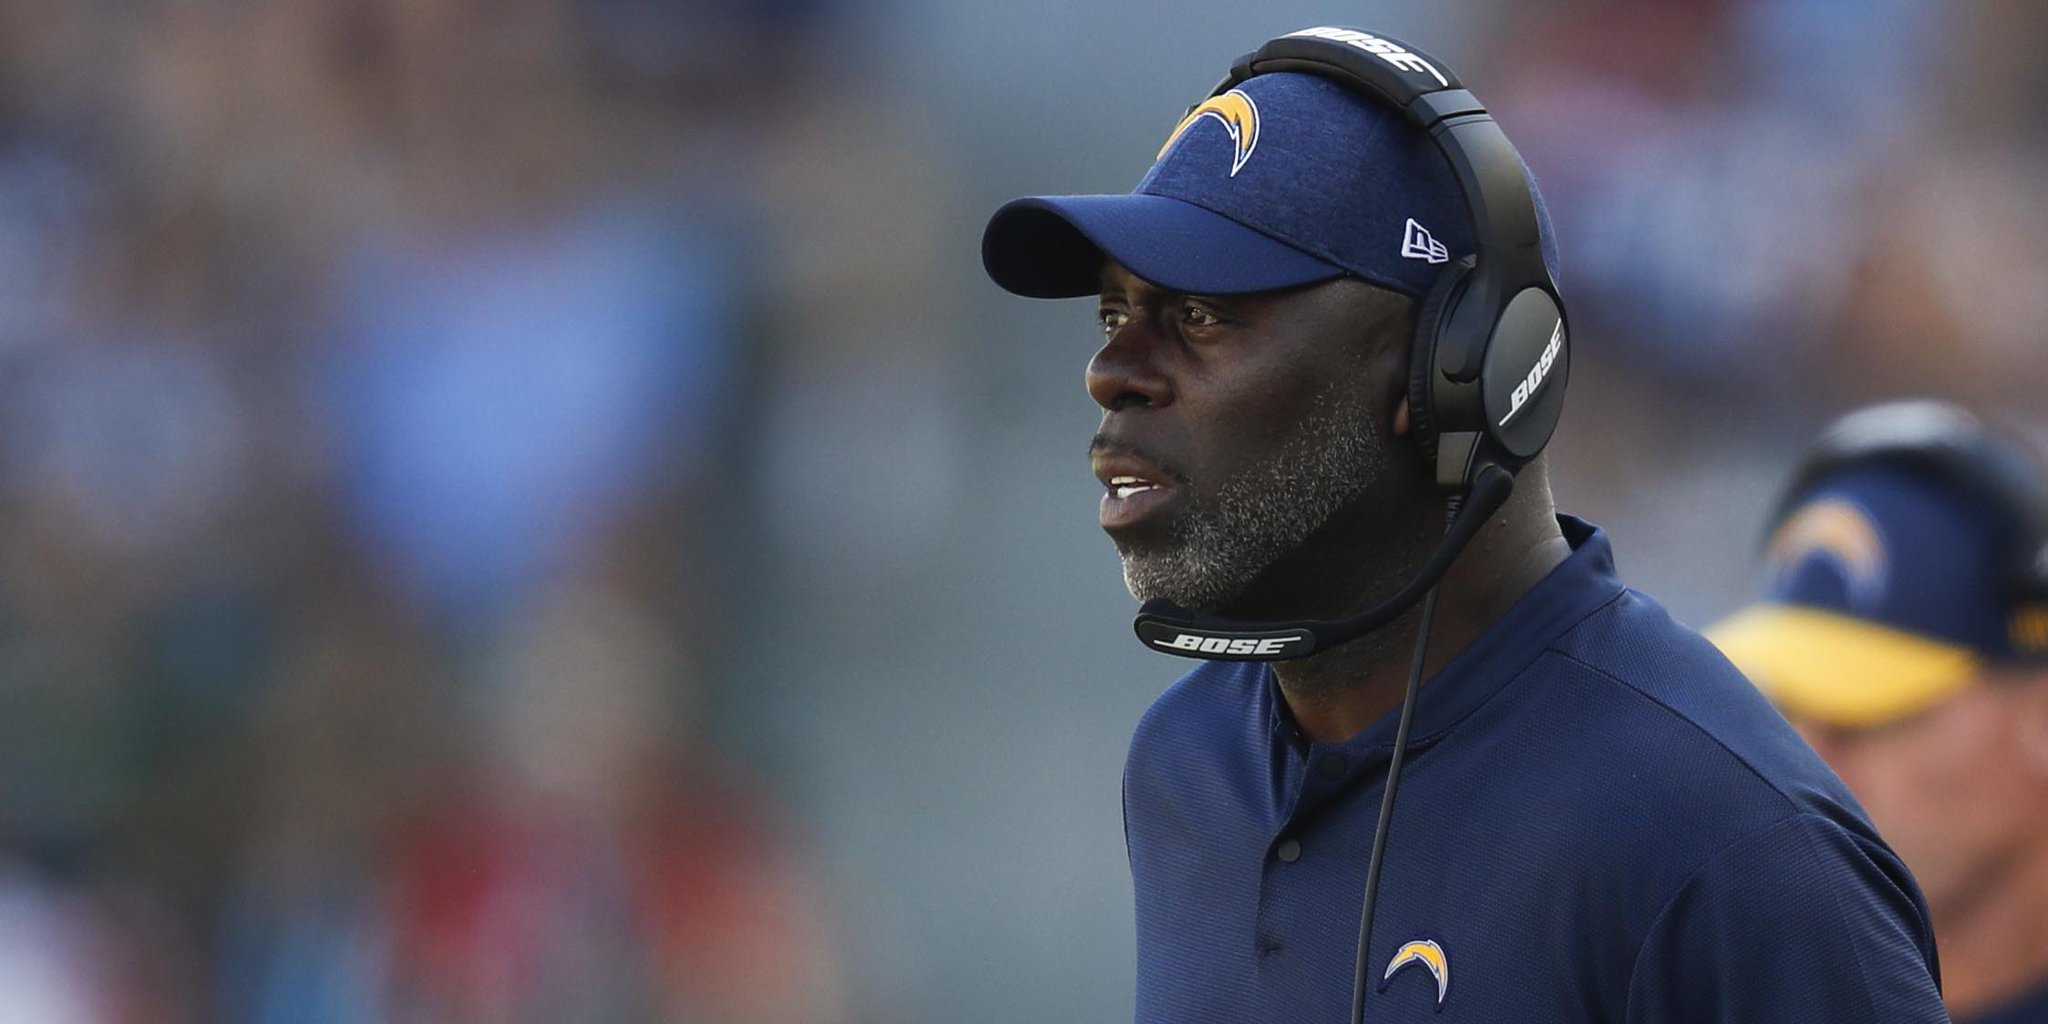 Chargers coach Anthony Lynn on win: 'Well, we made all of our damn kicks' https://t.co/R6L3Je820t https://t.co/vaJpdP65bR